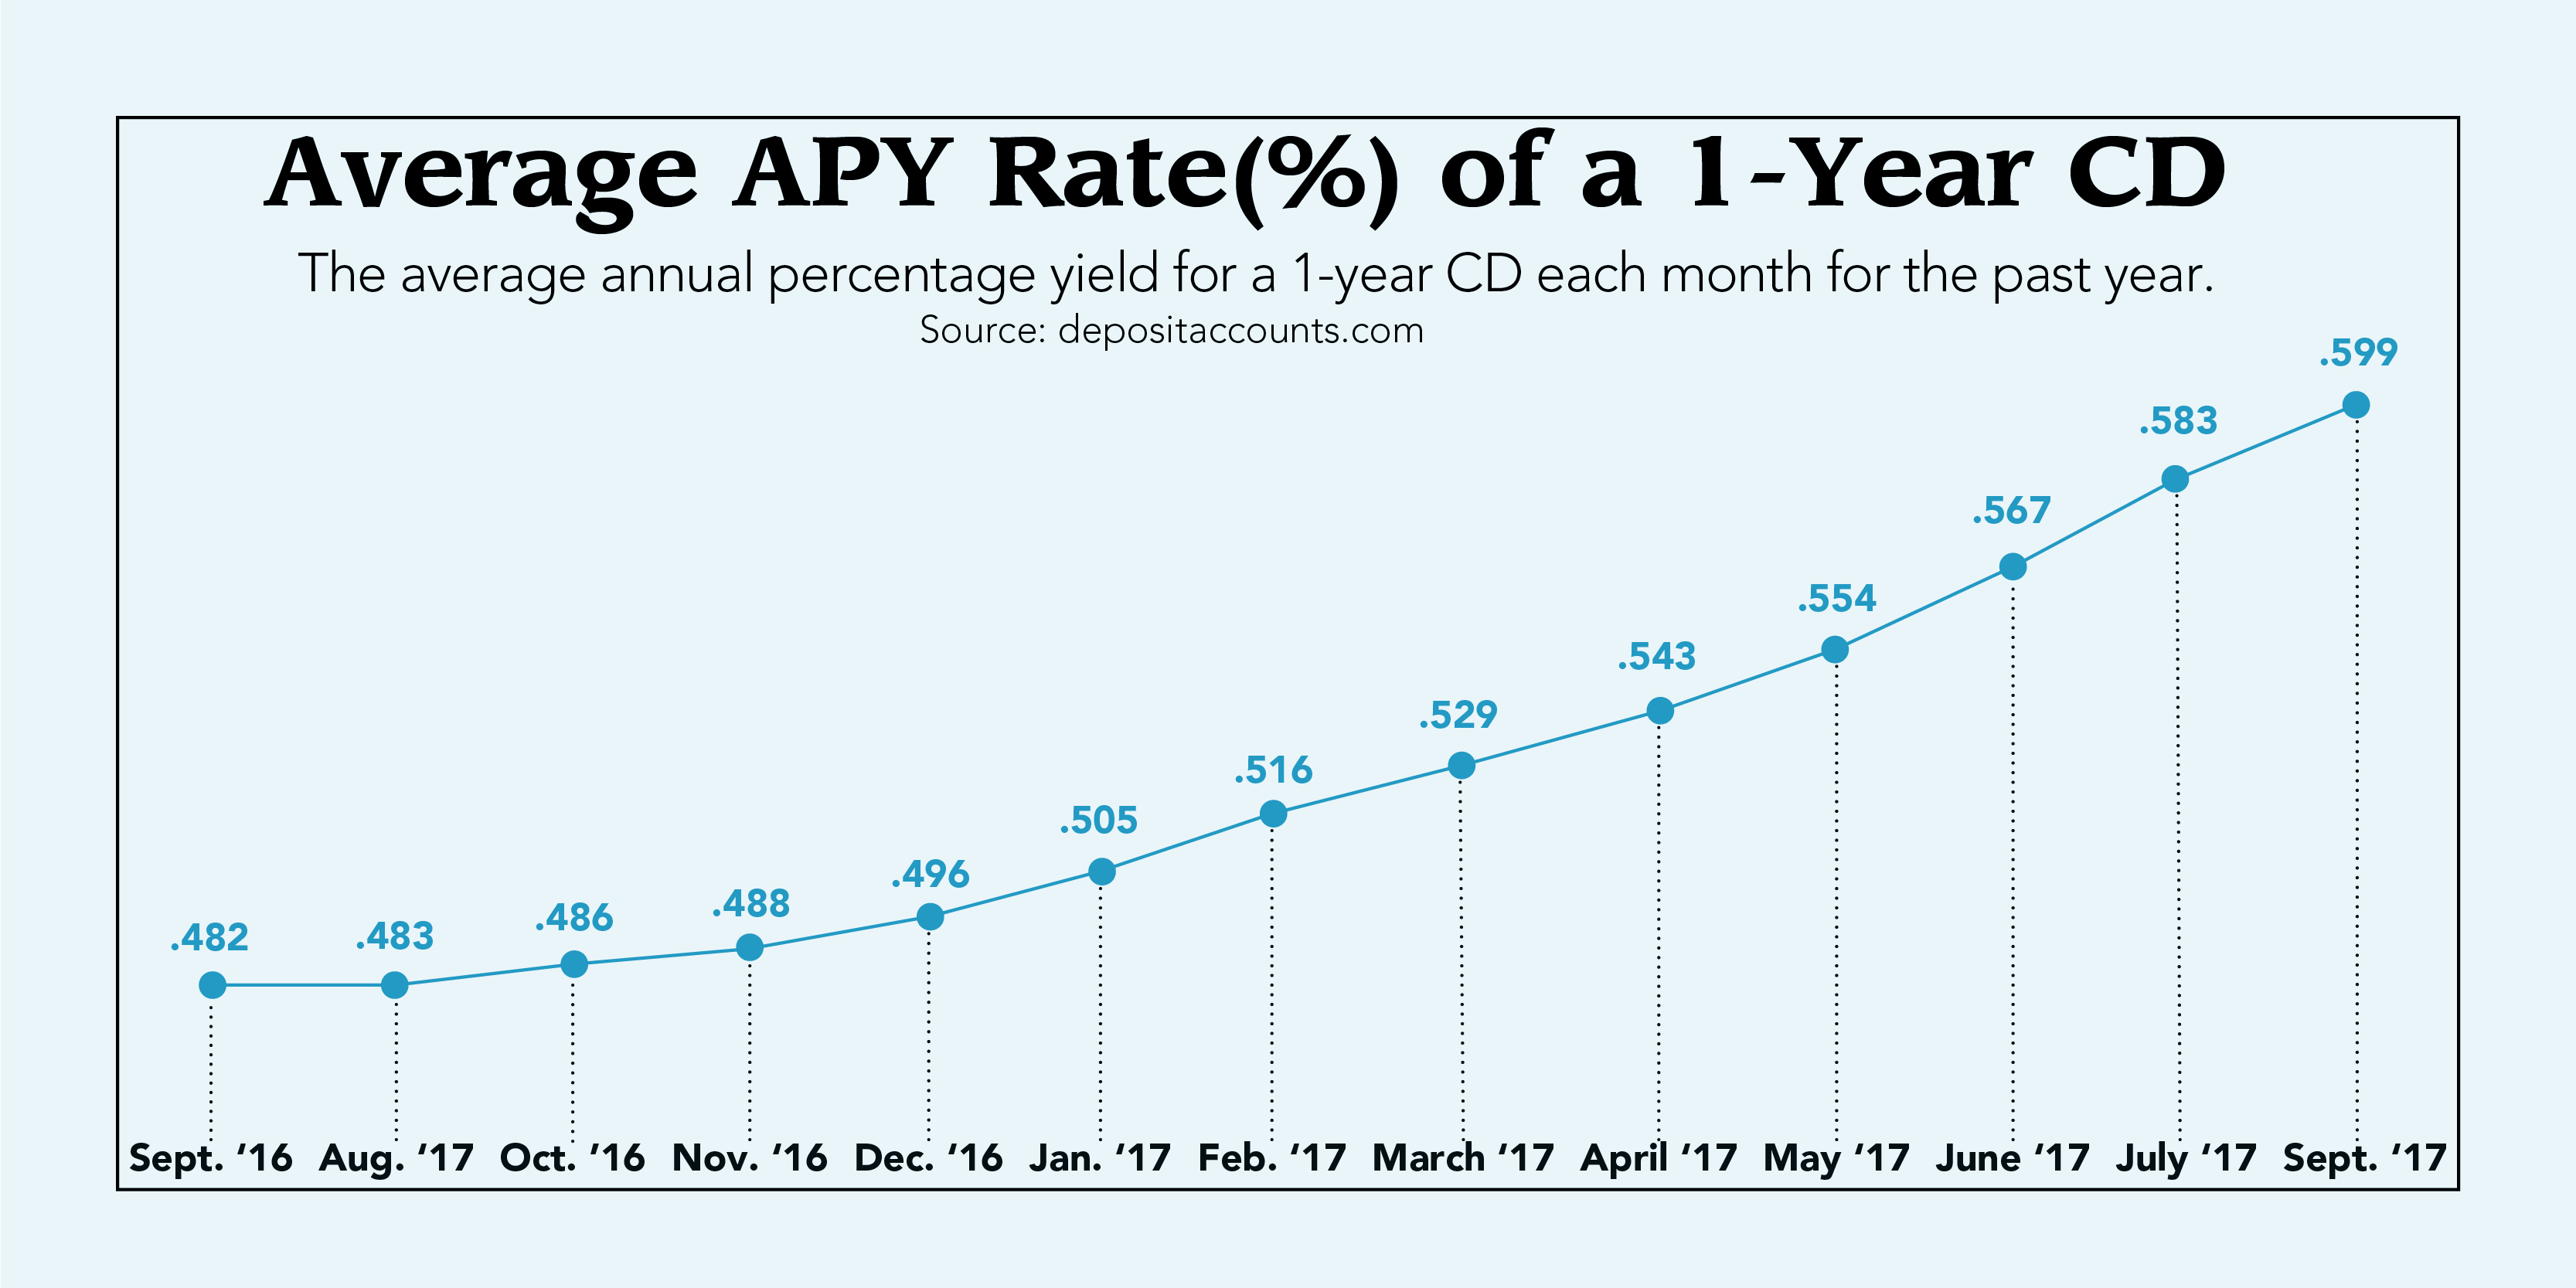 Advantages and disadvantages of cds cnbconnect the apy is the rate of return you will get each year taking into account the effect of compounding interest the higher the apy the more money youll get 1betcityfo Image collections